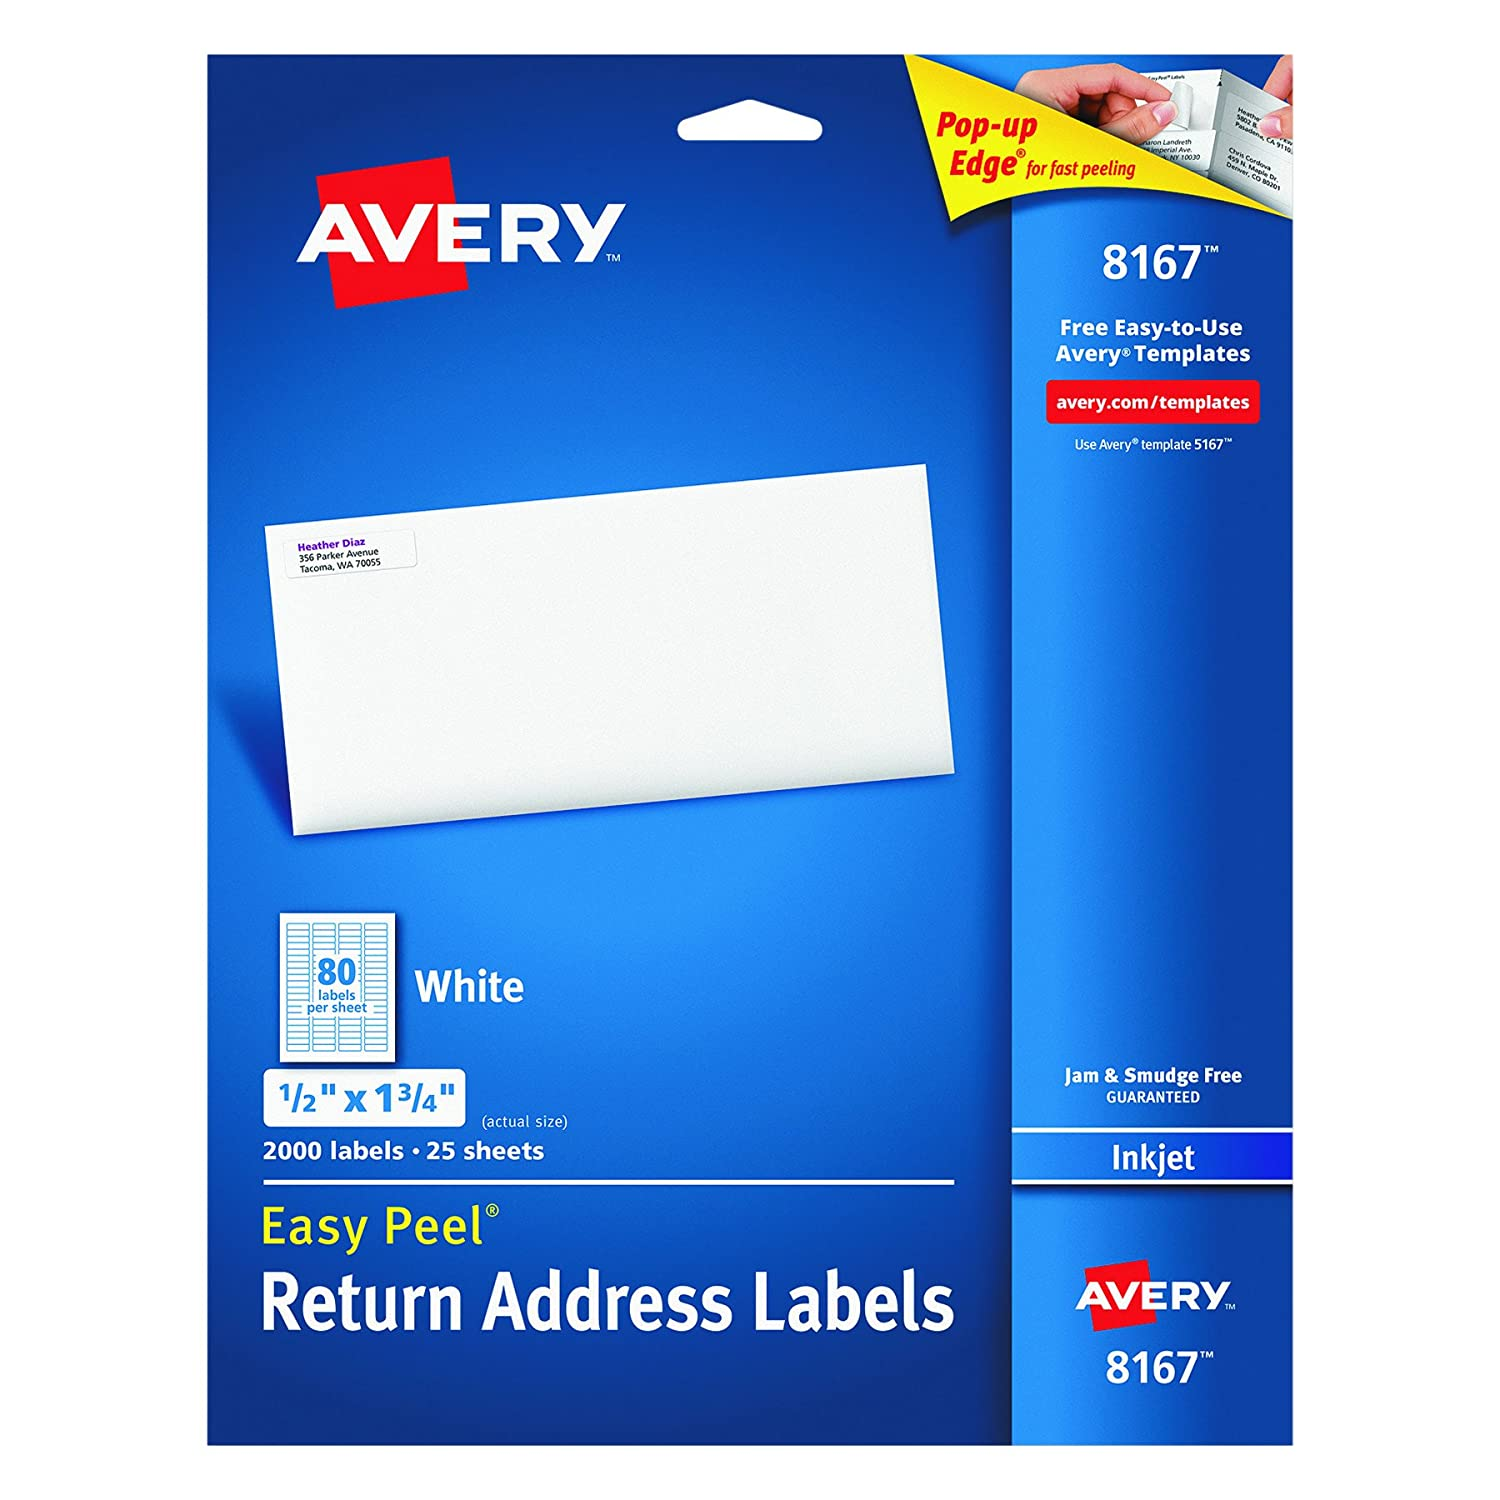 avery 8167 template word 2007